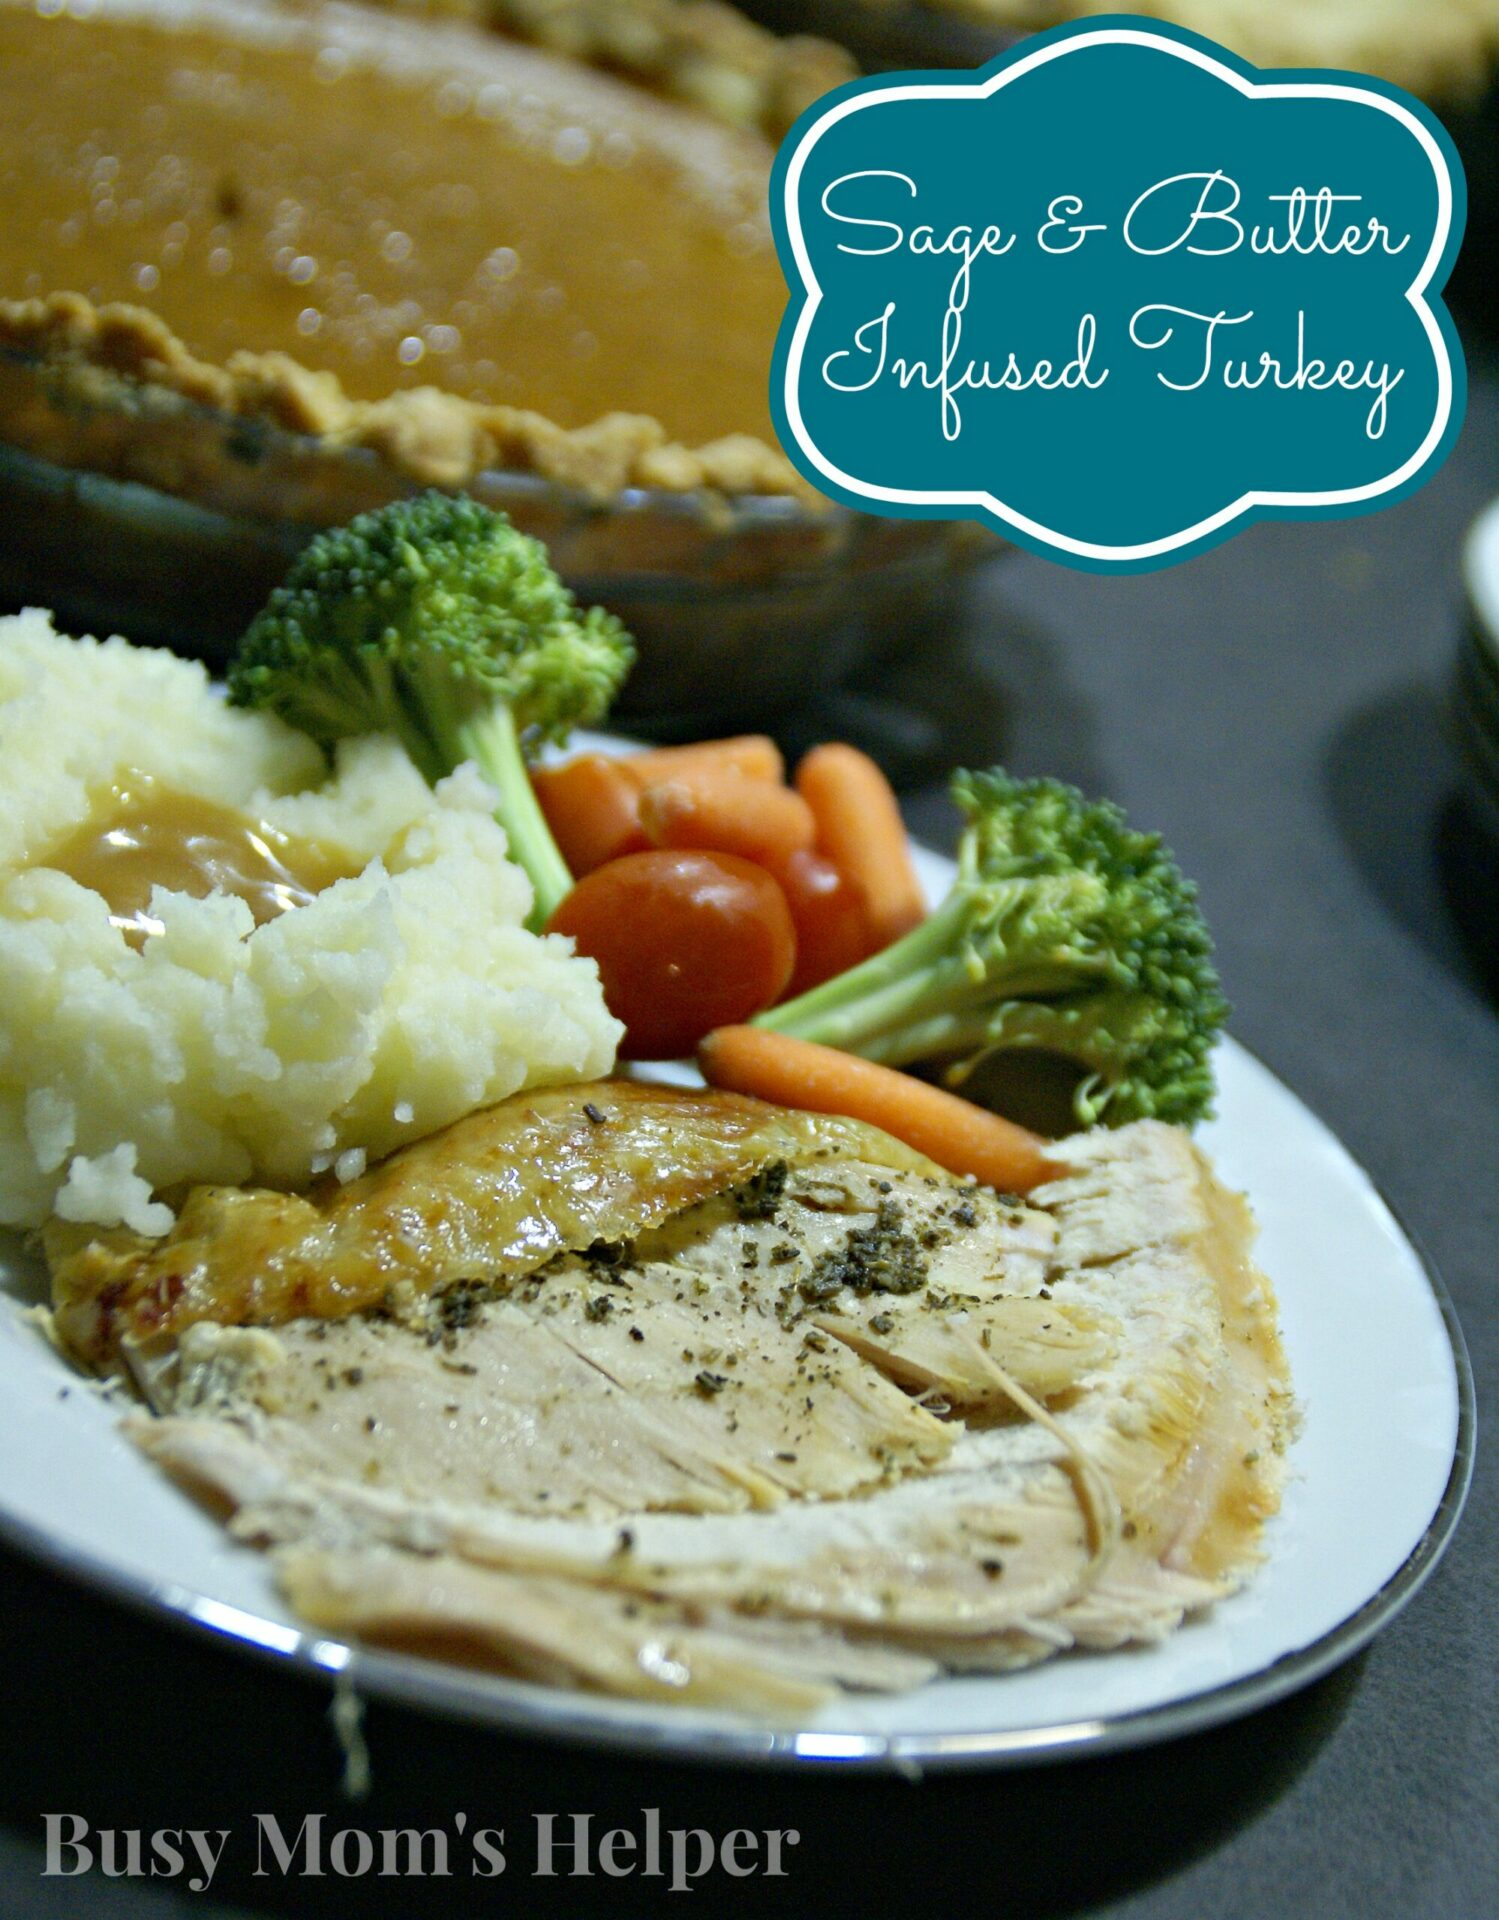 Sage and Butter Infused Turkey